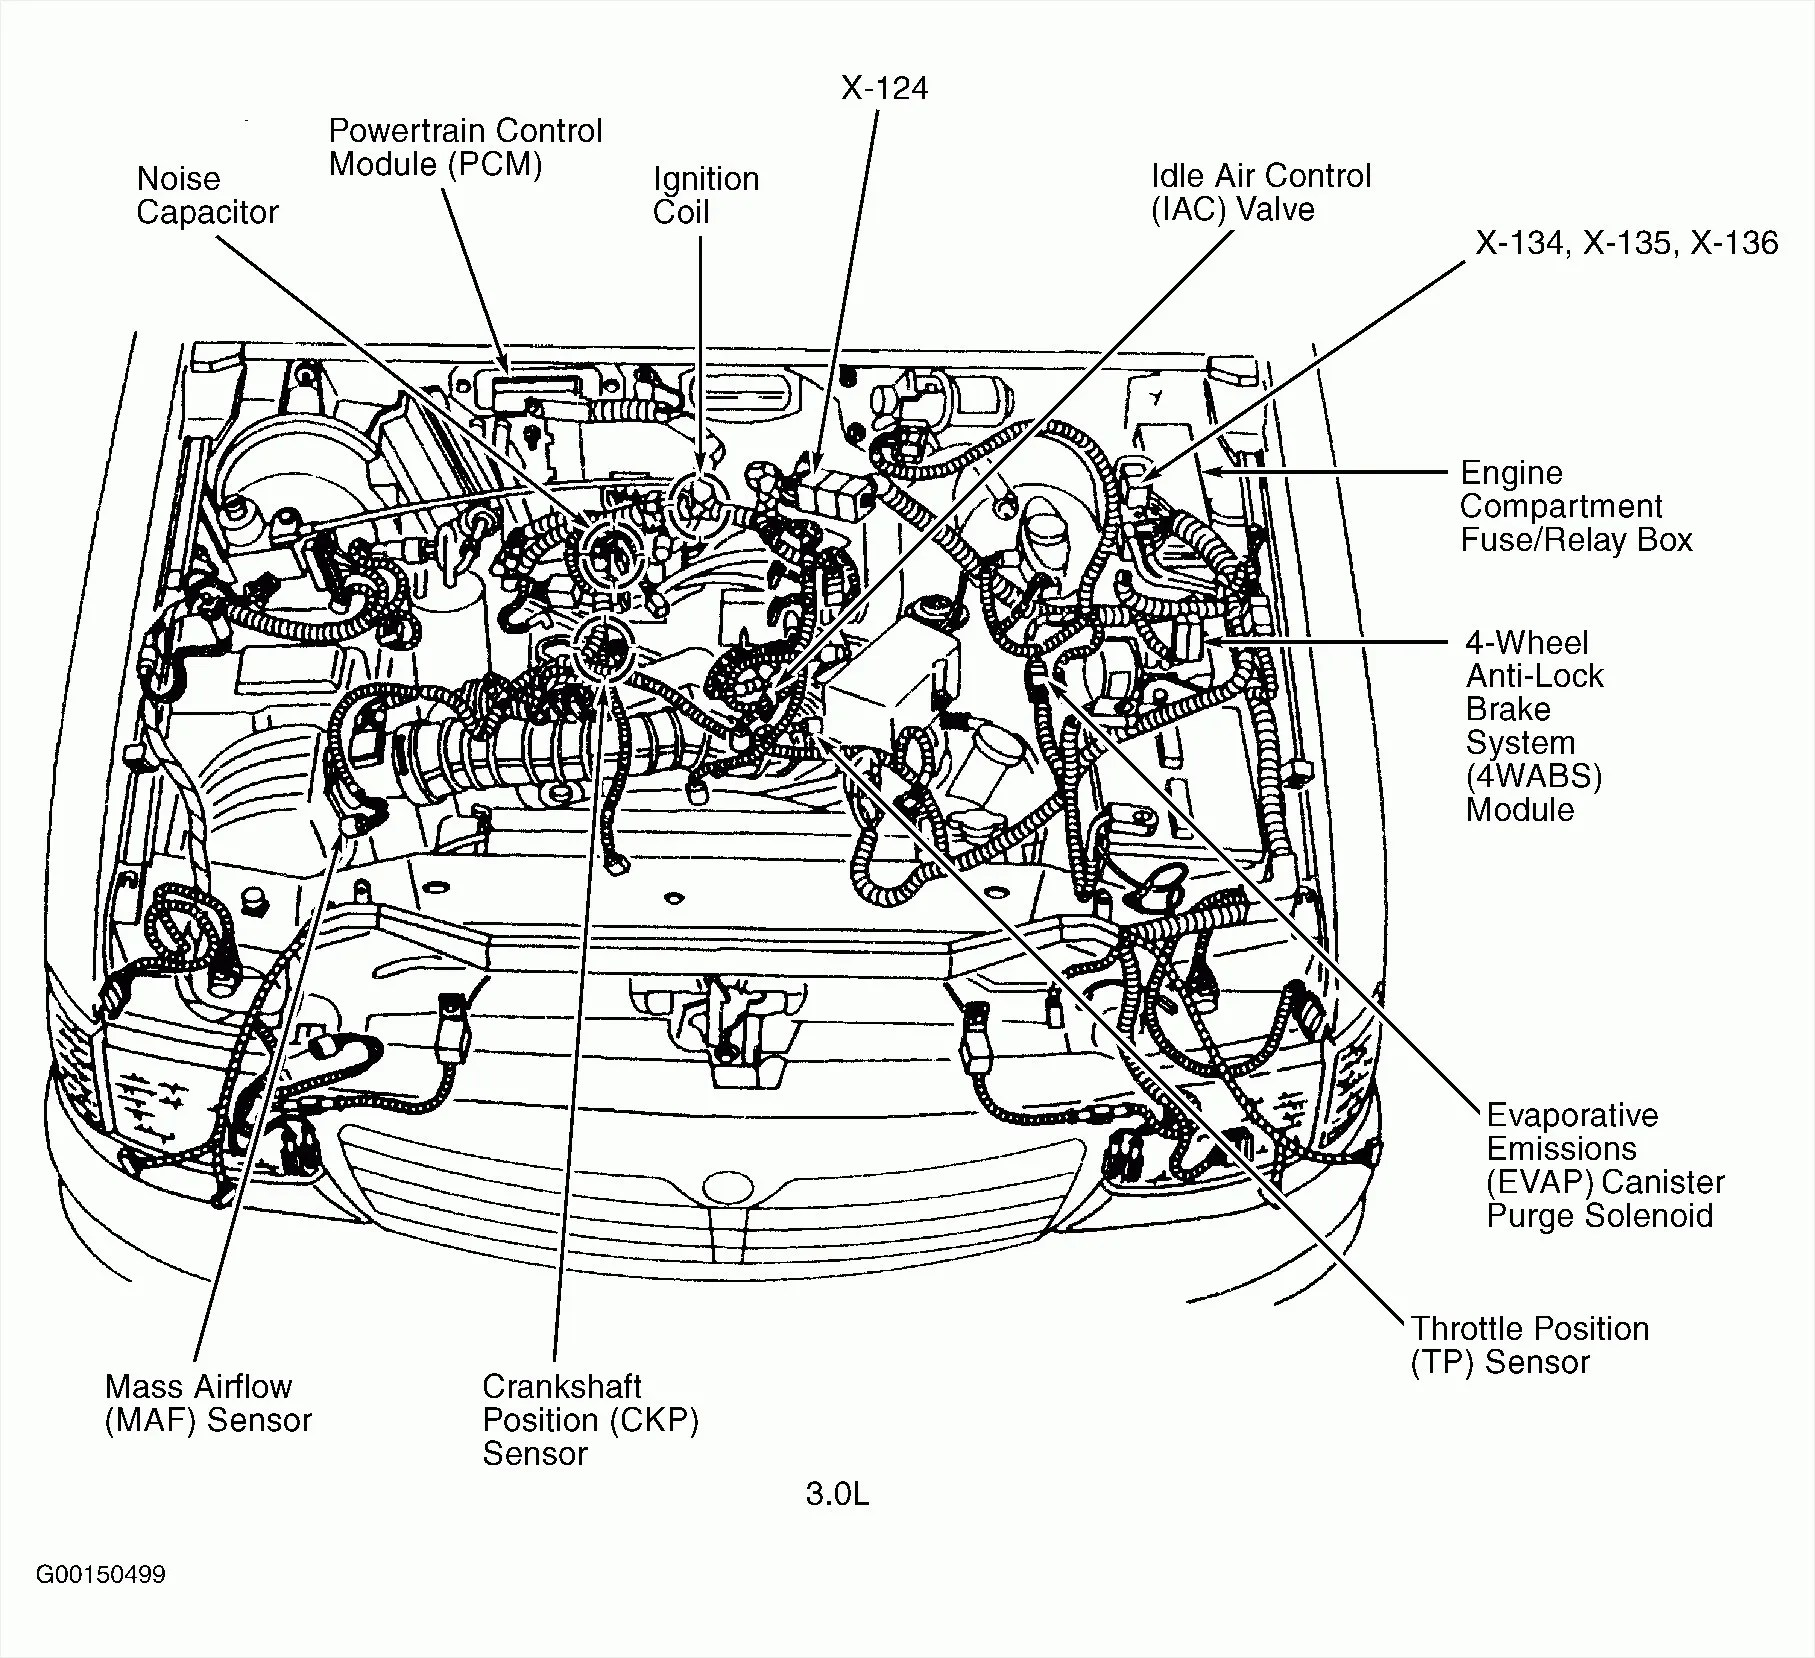 hight resolution of 97 chevy suburban engine diagram wiring diagram datasource 97 chevy engine diagram wiring diagram lyc 97